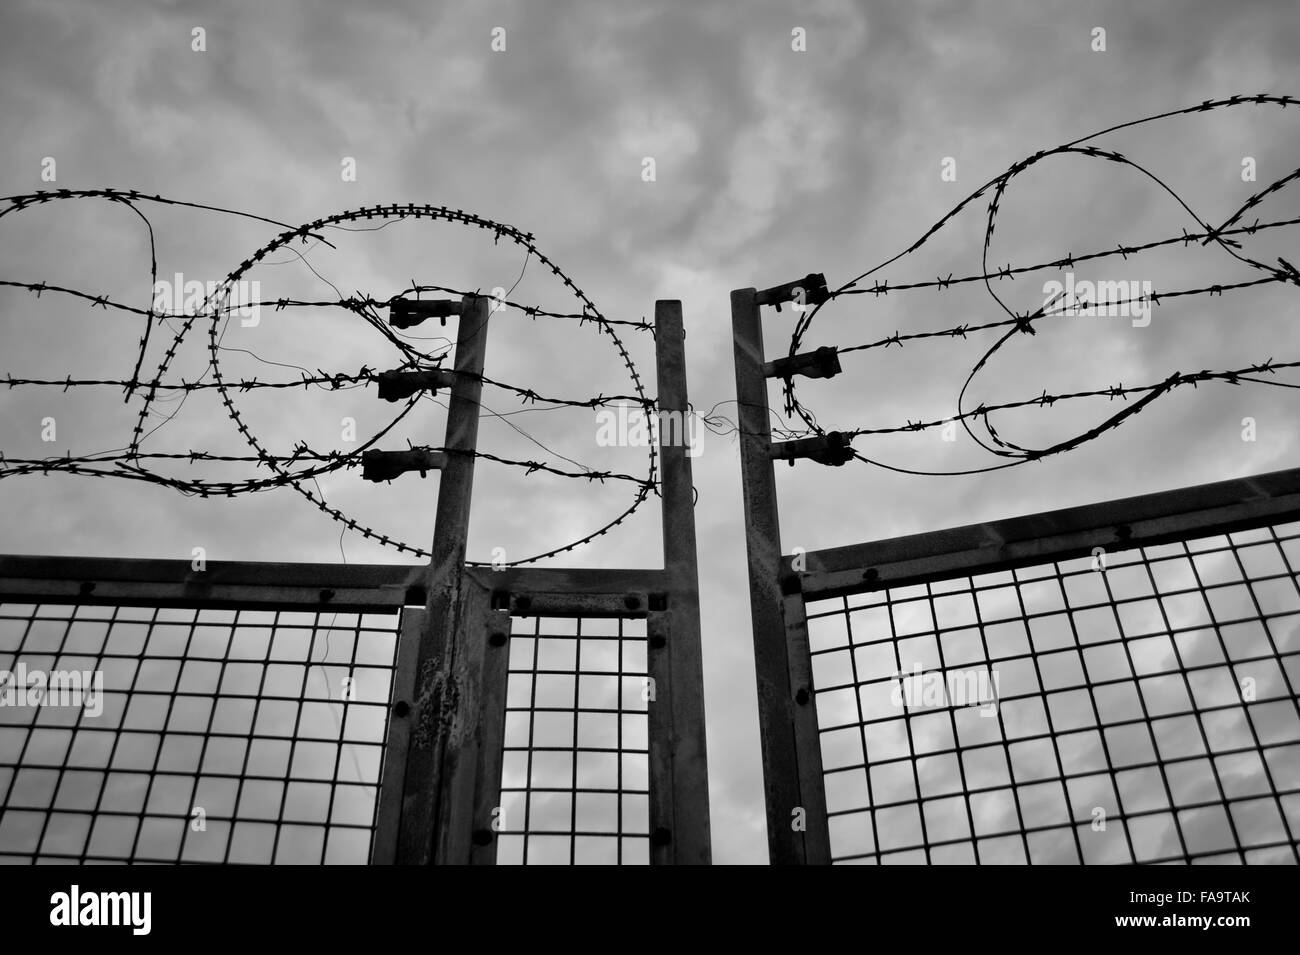 Barbed wire fence and metal gate - Stock Image